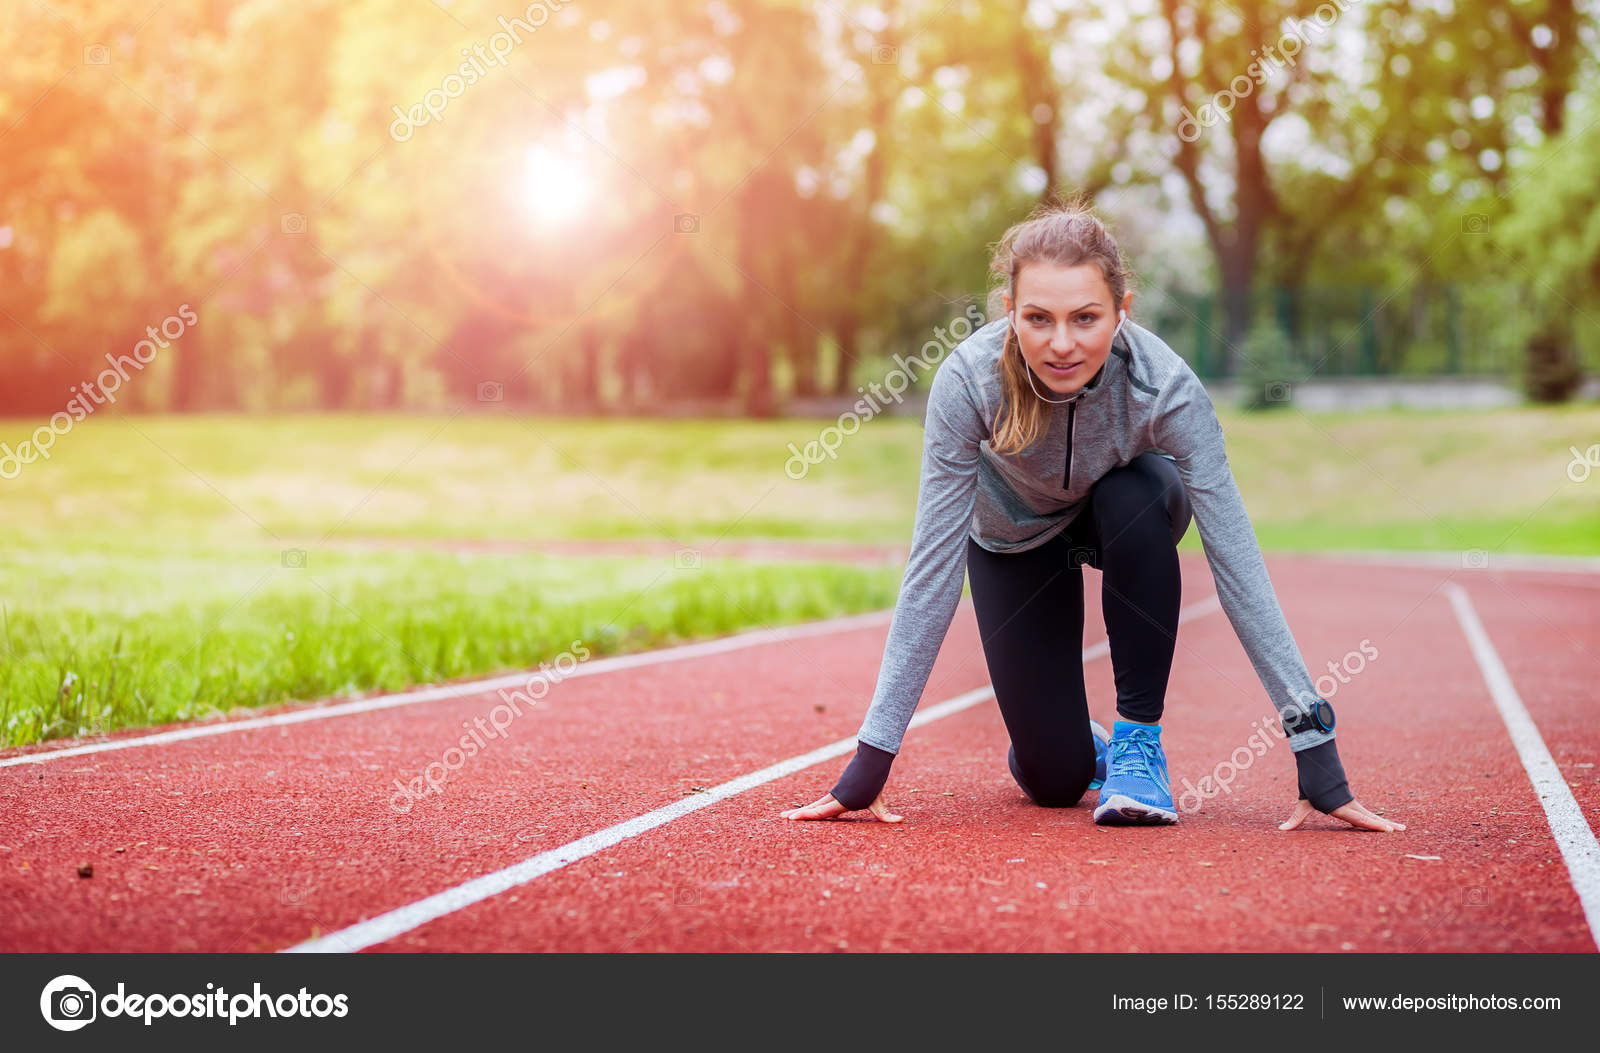 Athletic Woman On Running Track Getting Ready To Start Run Photo By Leszekglasner